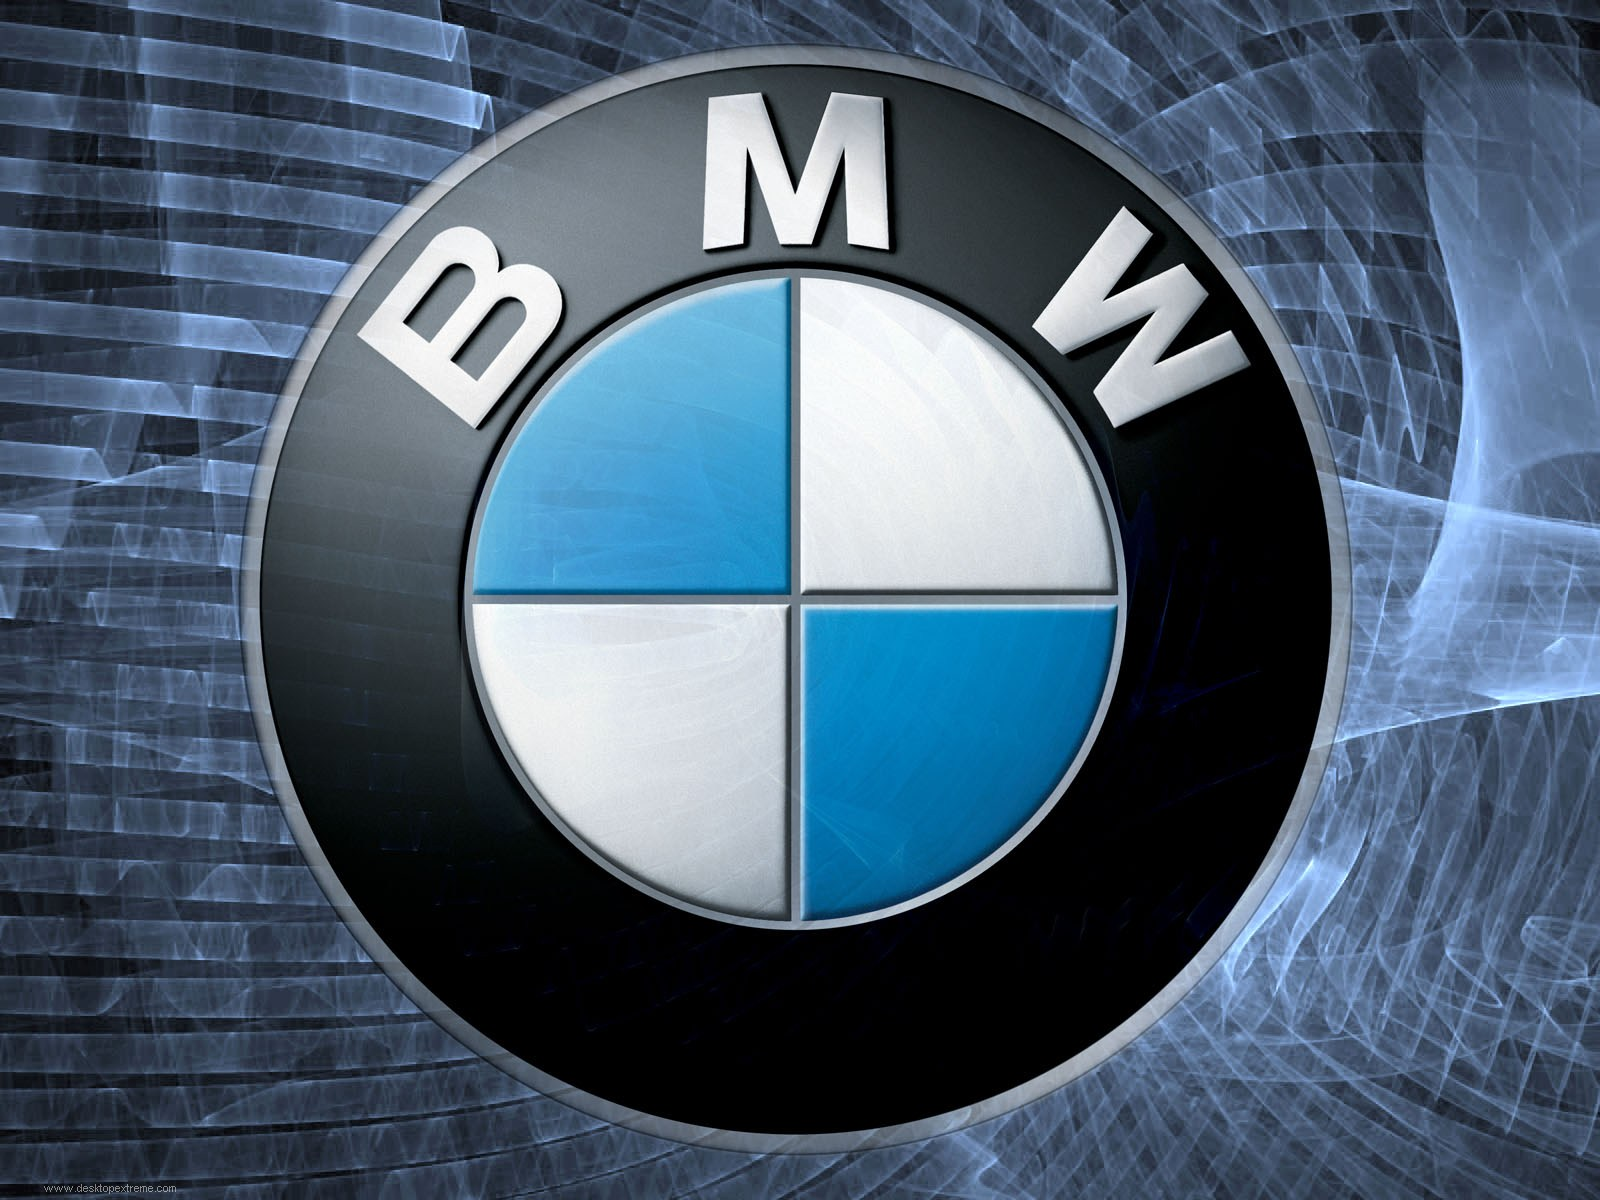 One model of bmw logo